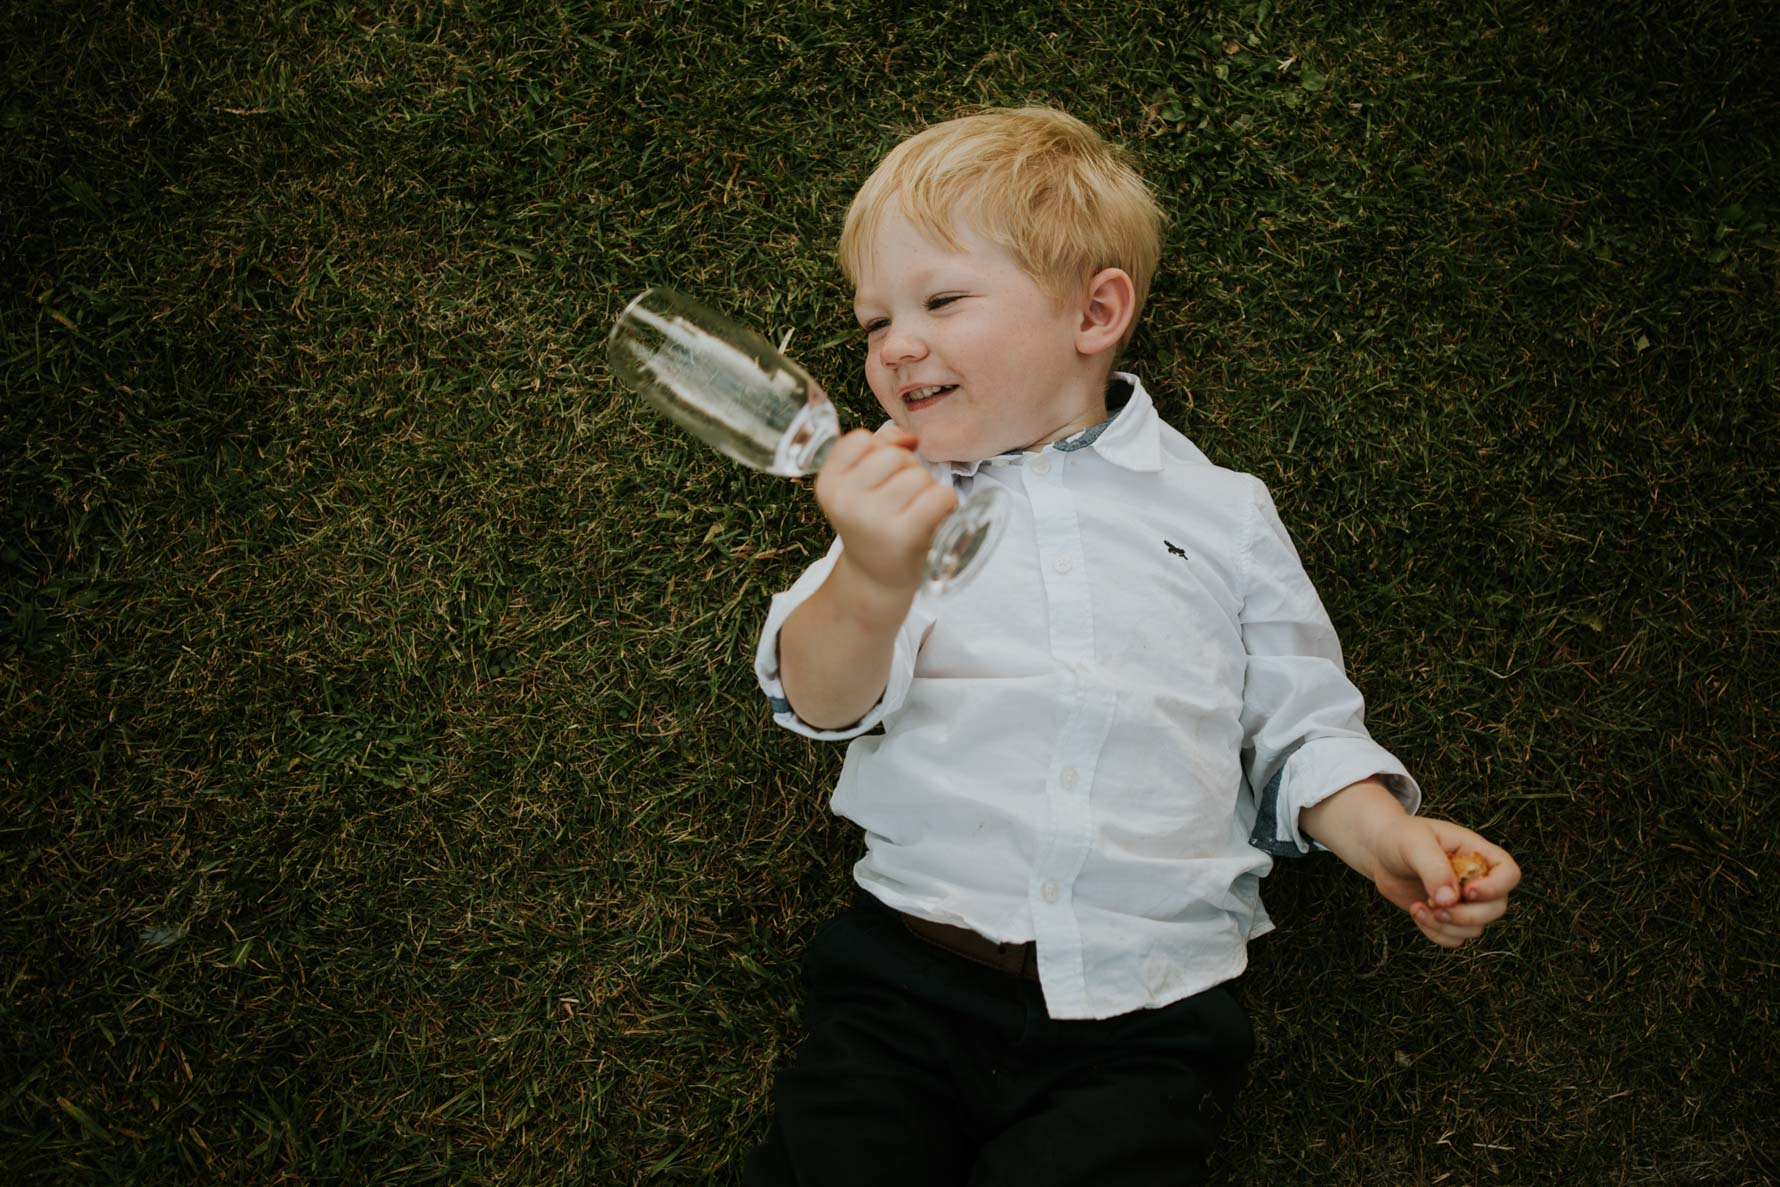 child wedding guest holding a wine glass